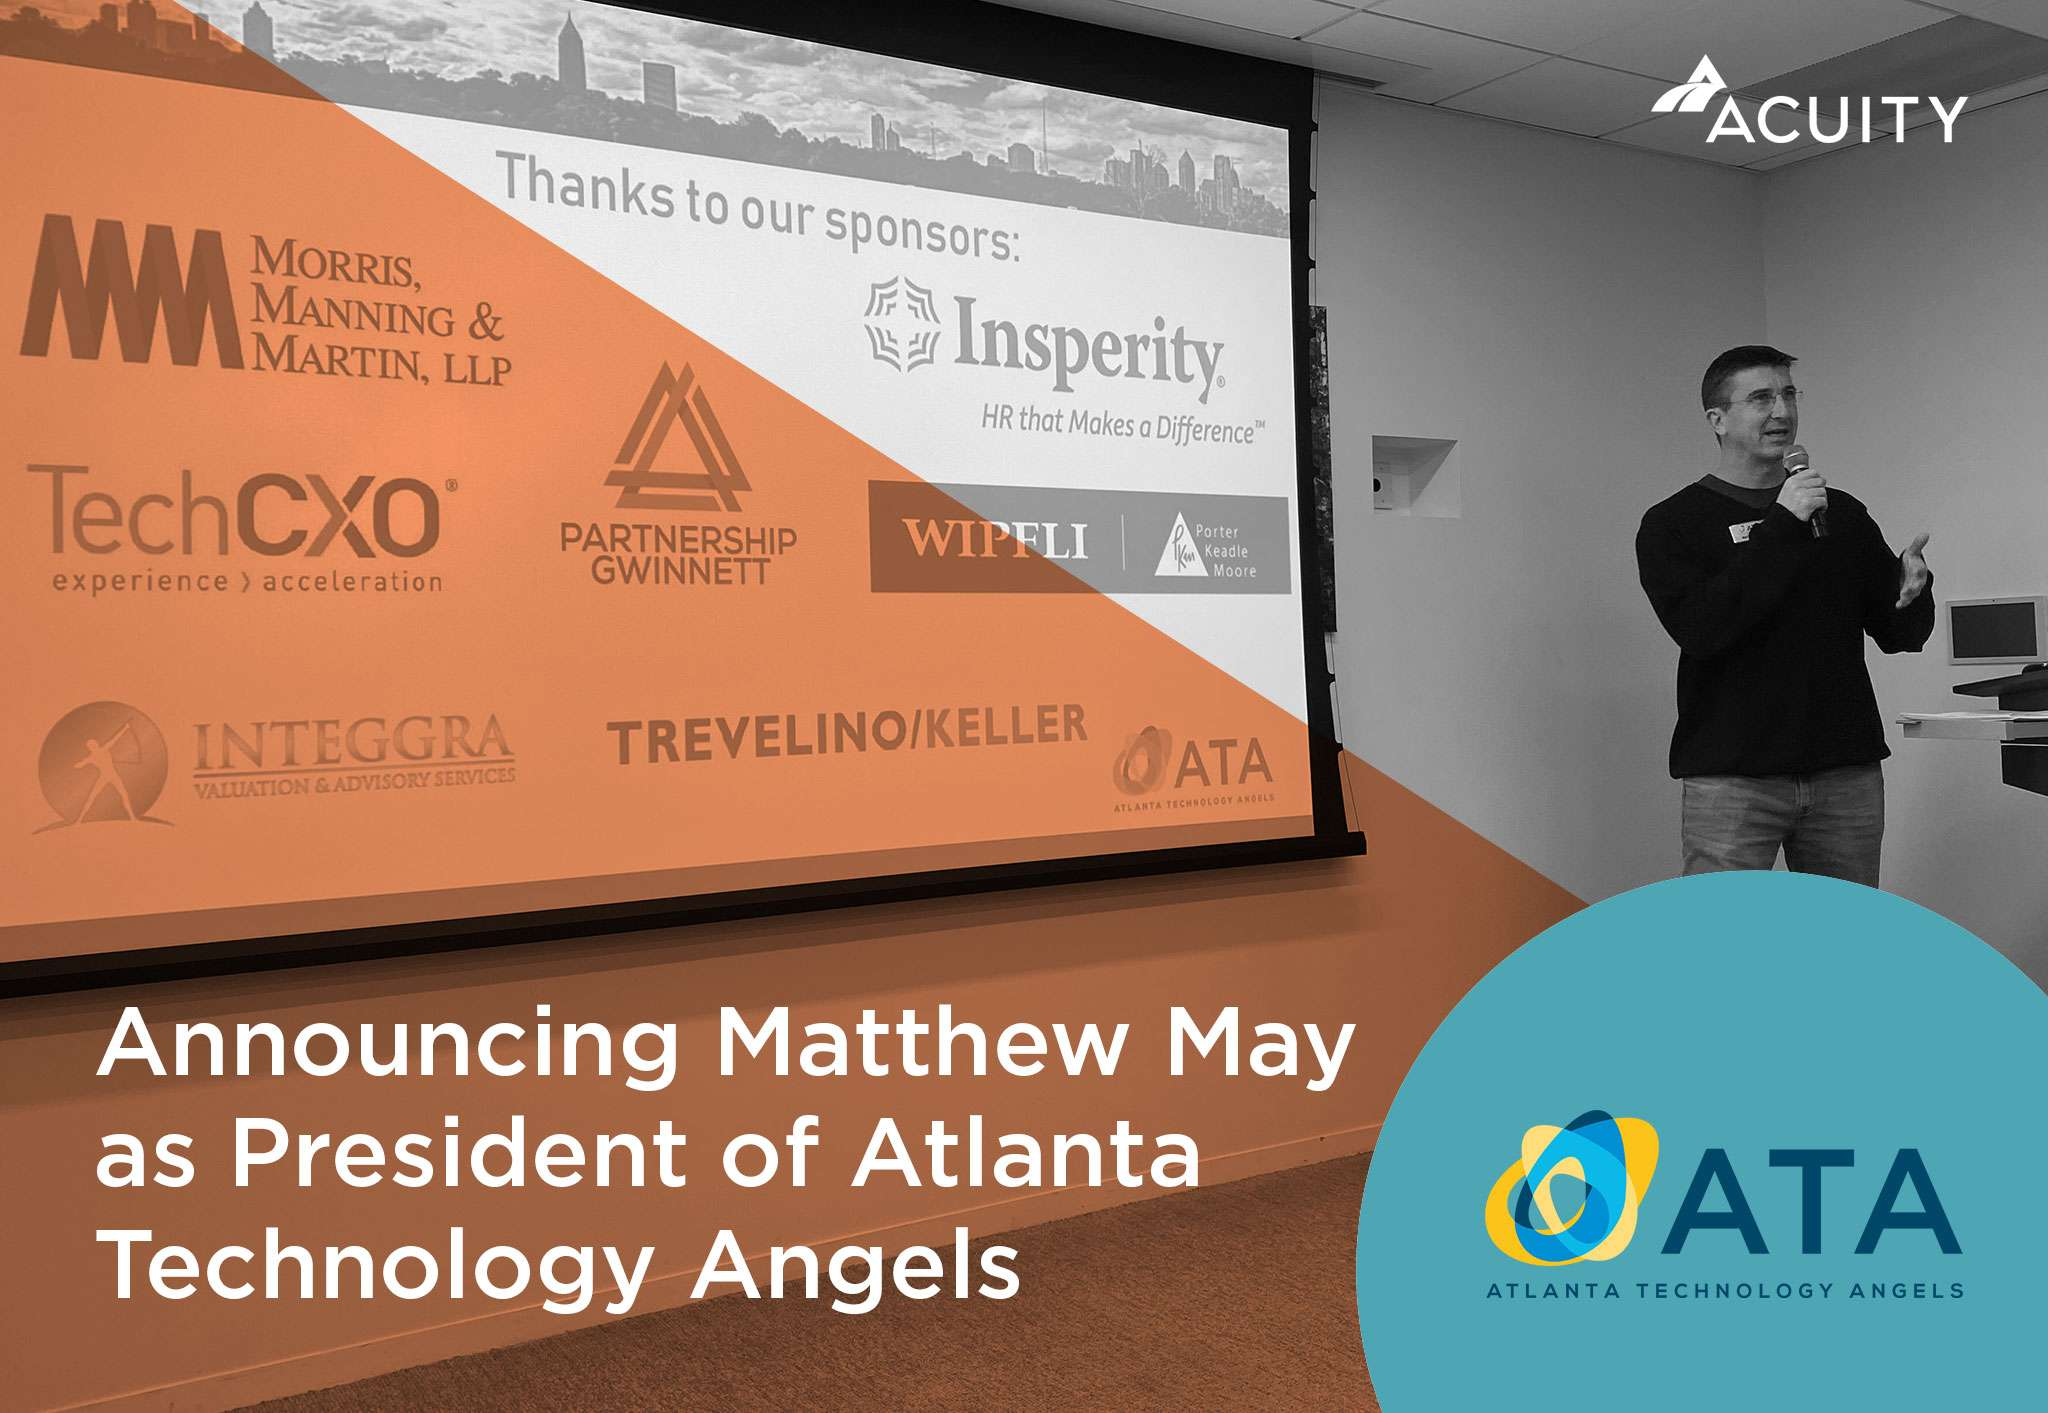 Acuity Co-Founder Matthew May Named President of Atlanta Technology Angels